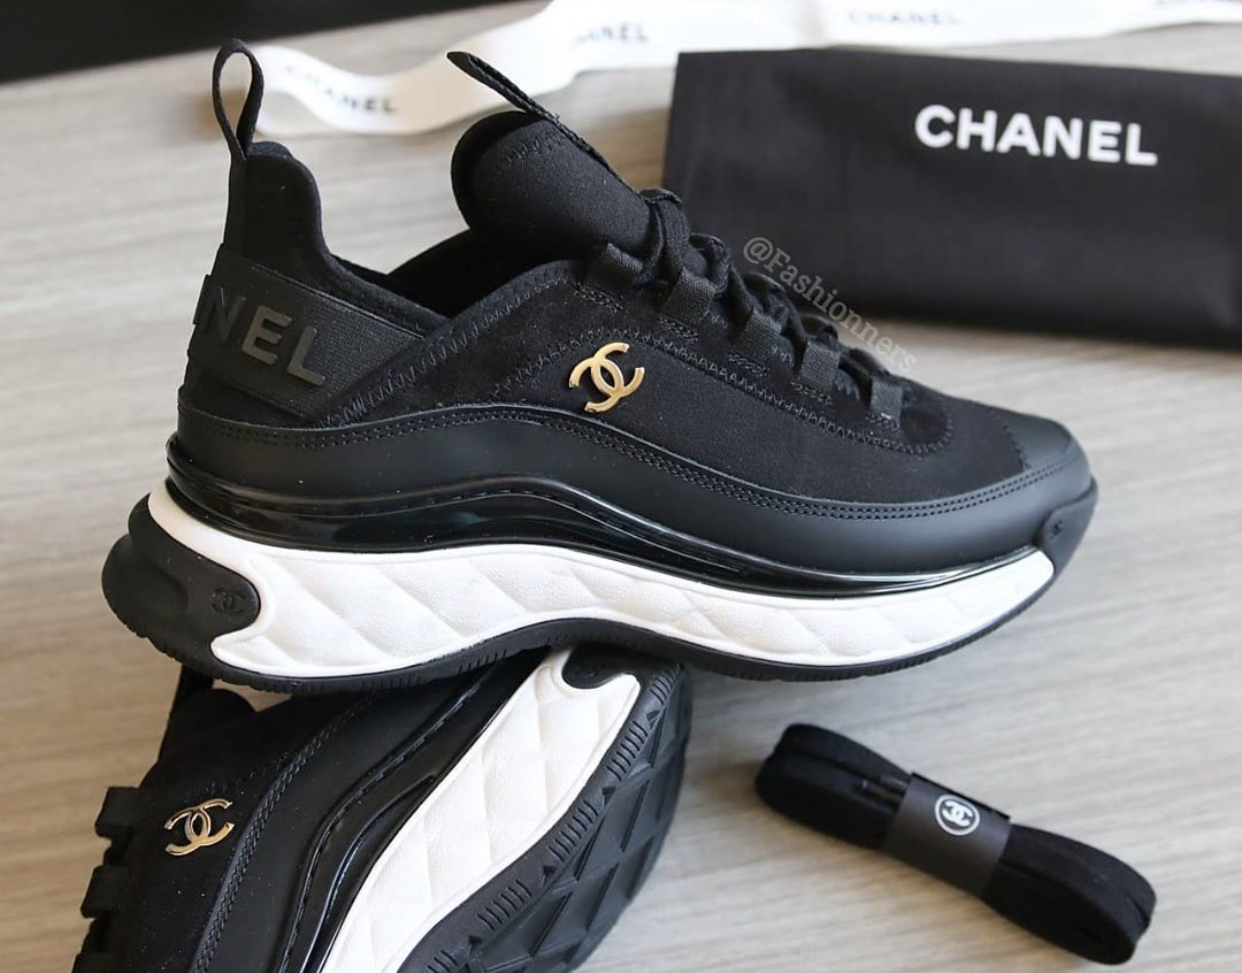 CHANEL 2020 Cruise Low-Top Sneakers